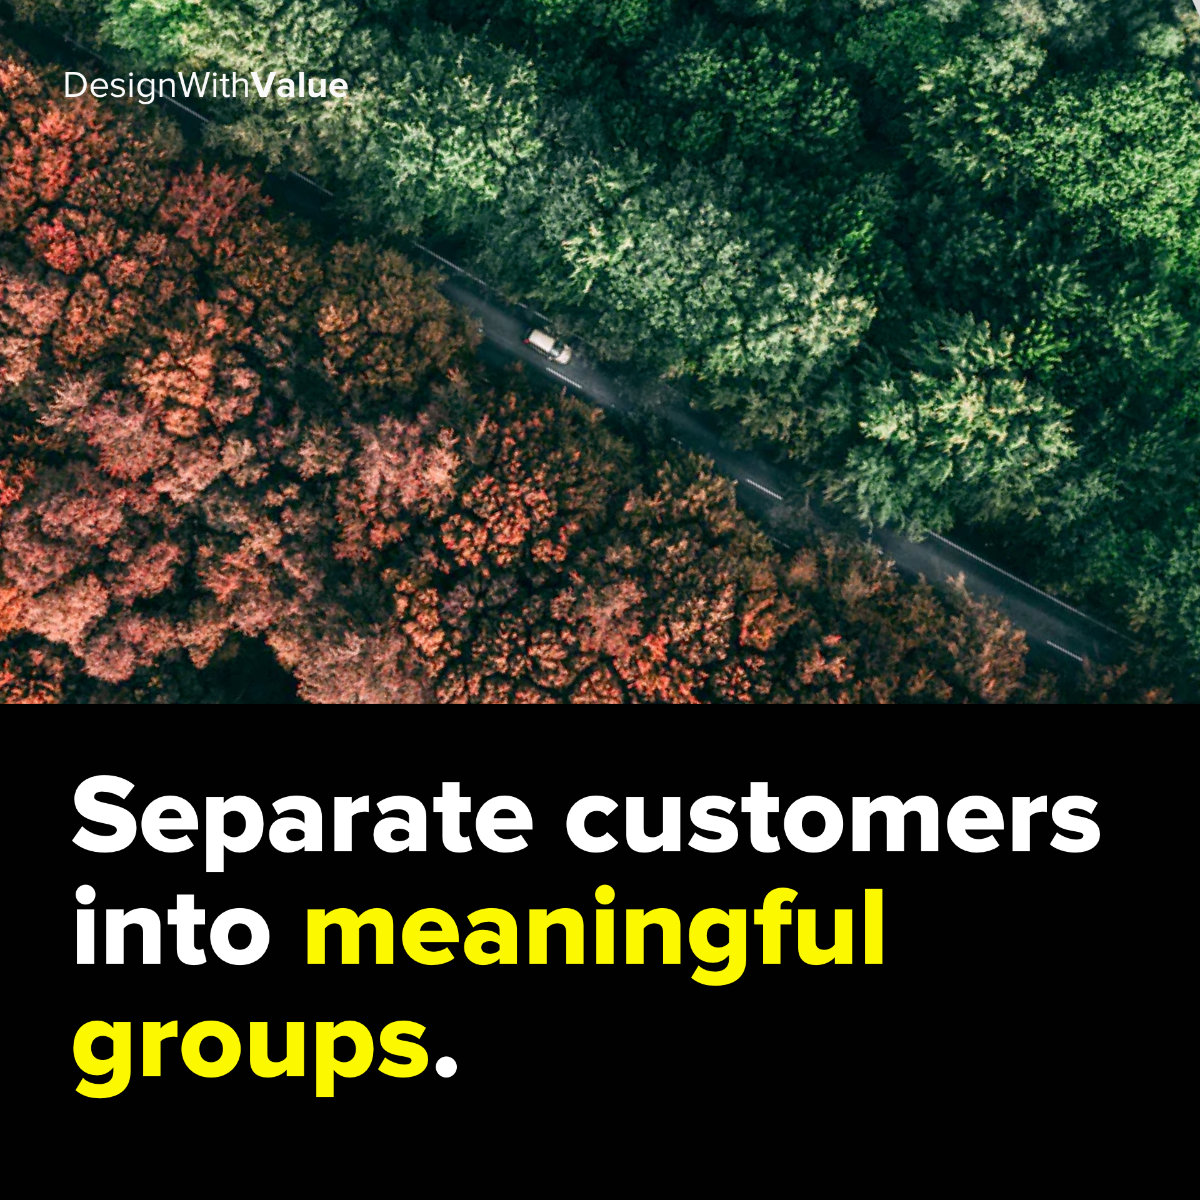 Separate customers into meaningful groups